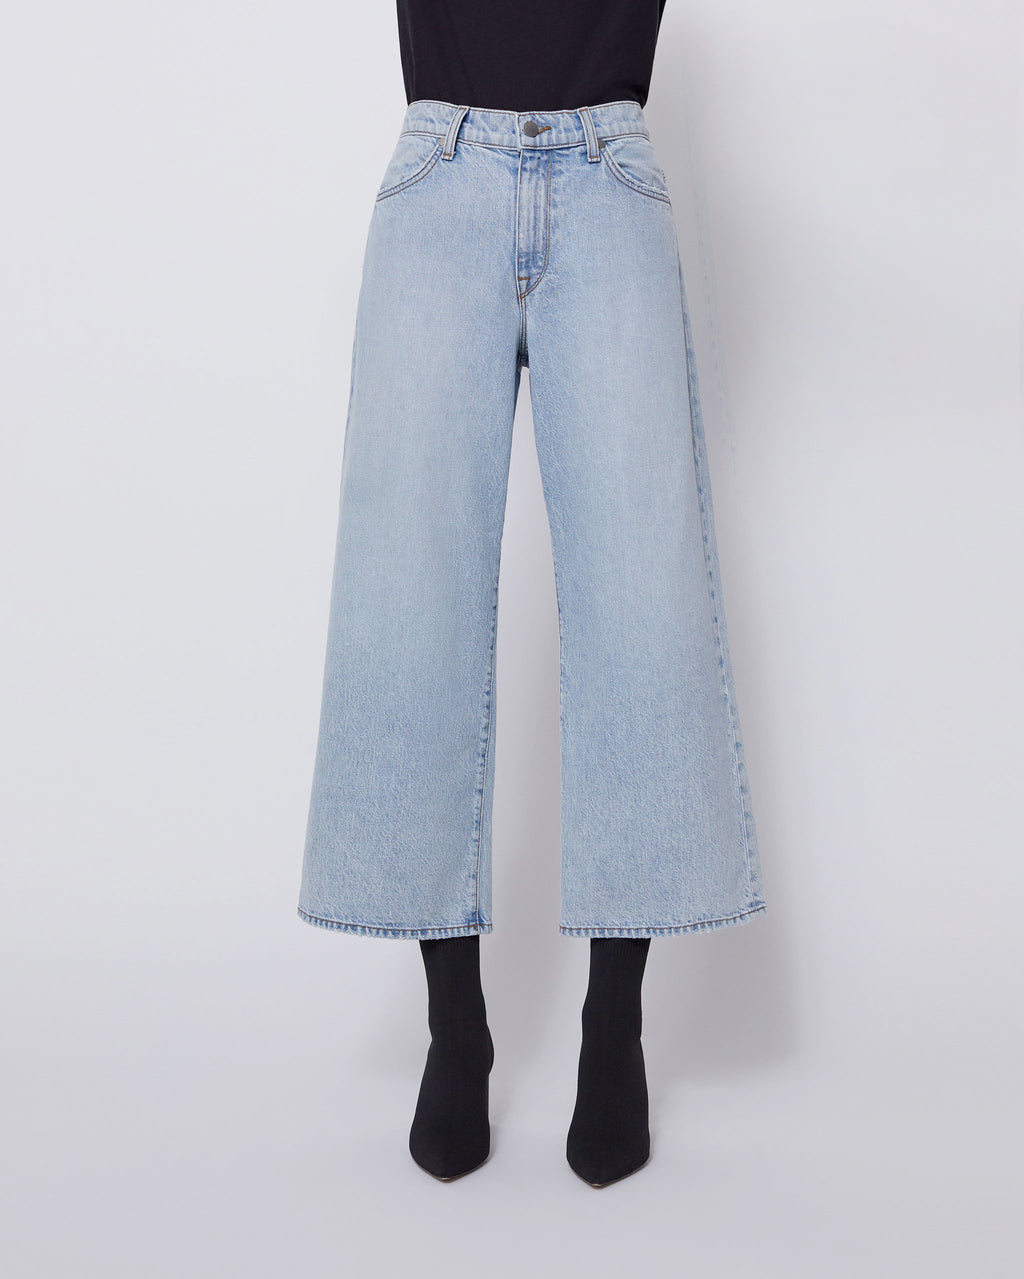 The Cropped Wide Leg Jean in Partly Cloudy